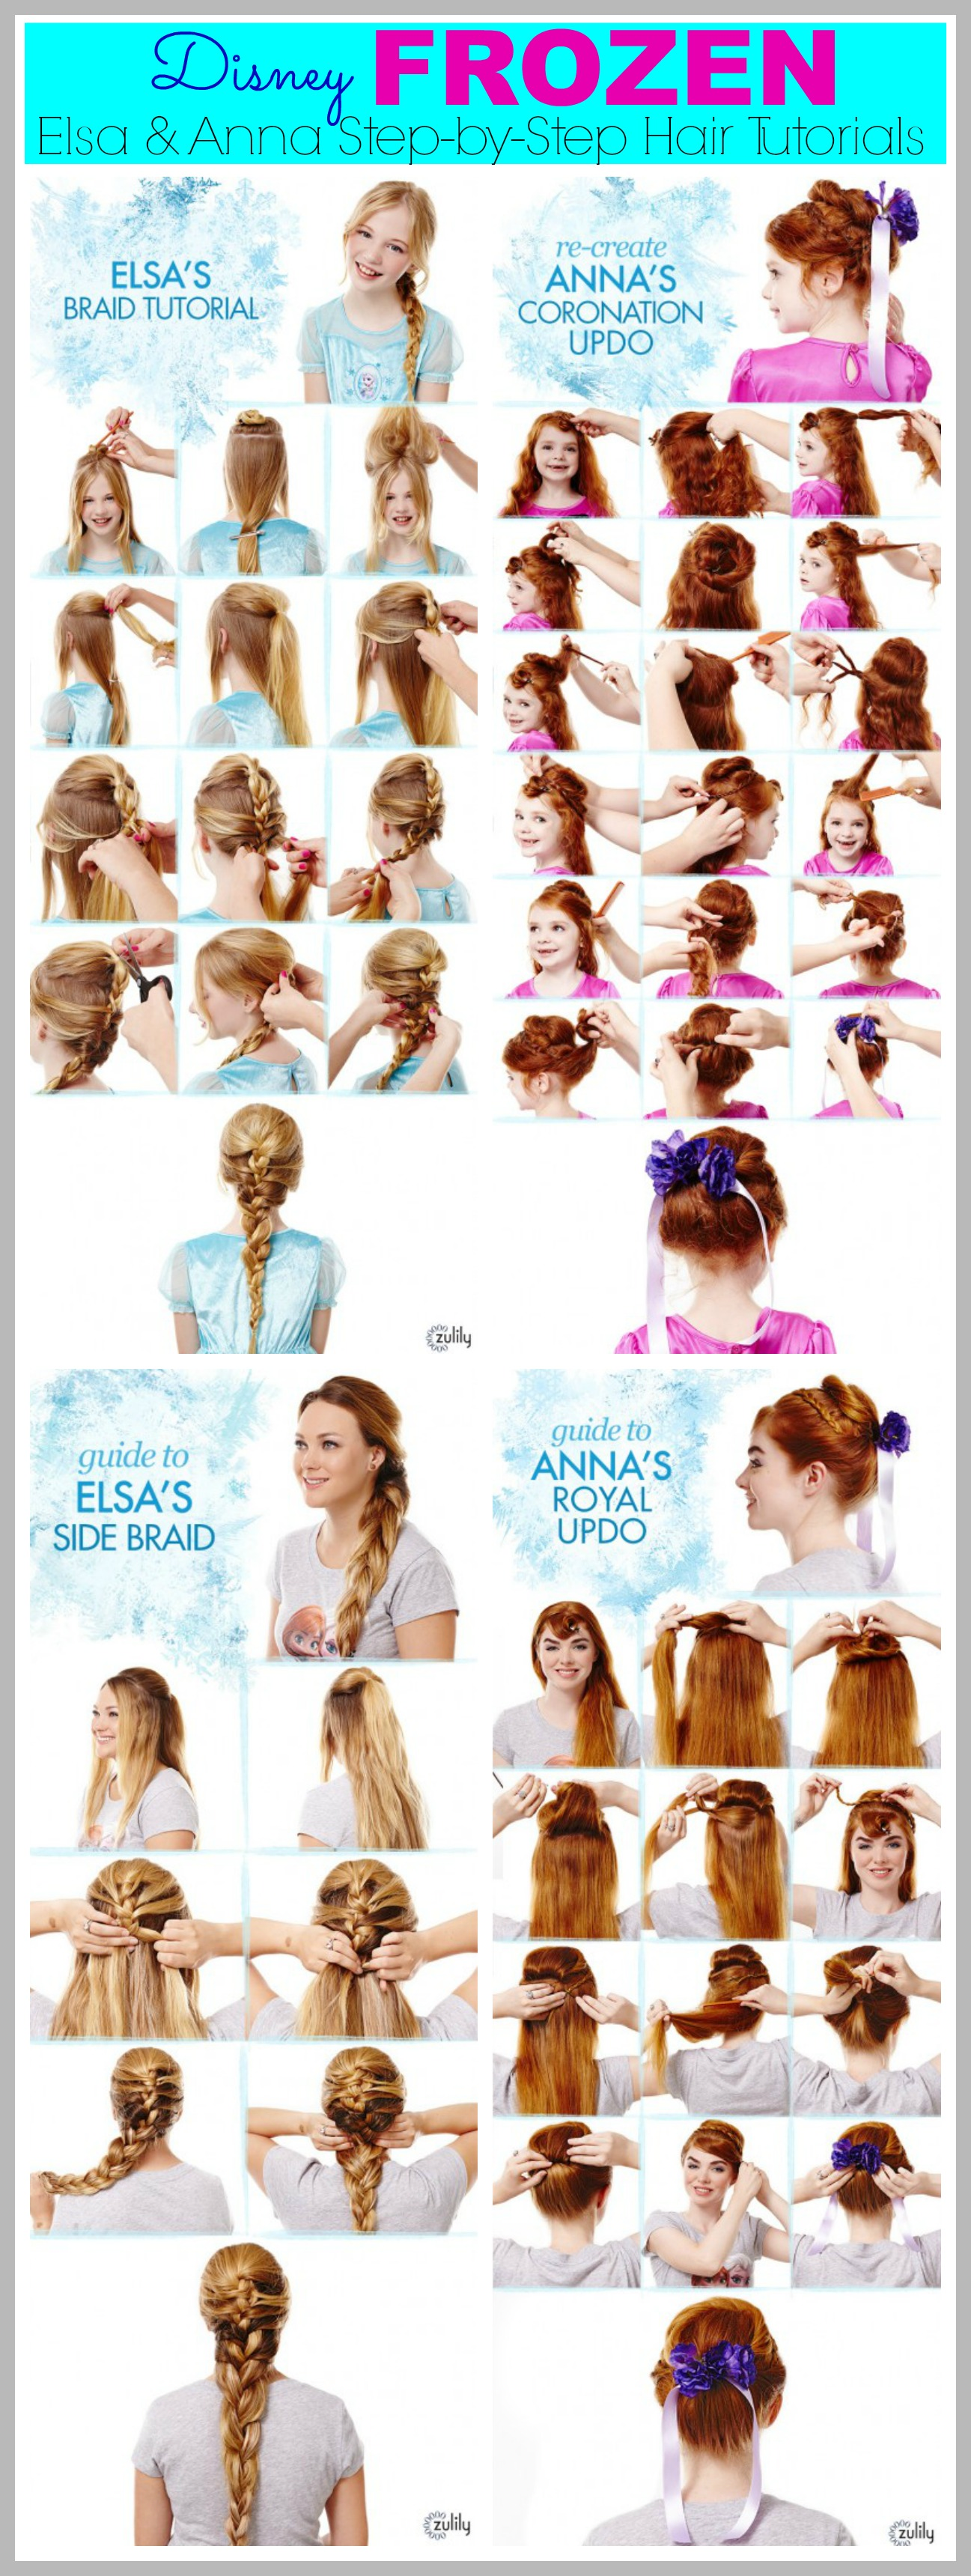 frozen hair tutorials   elsa and anna hacks